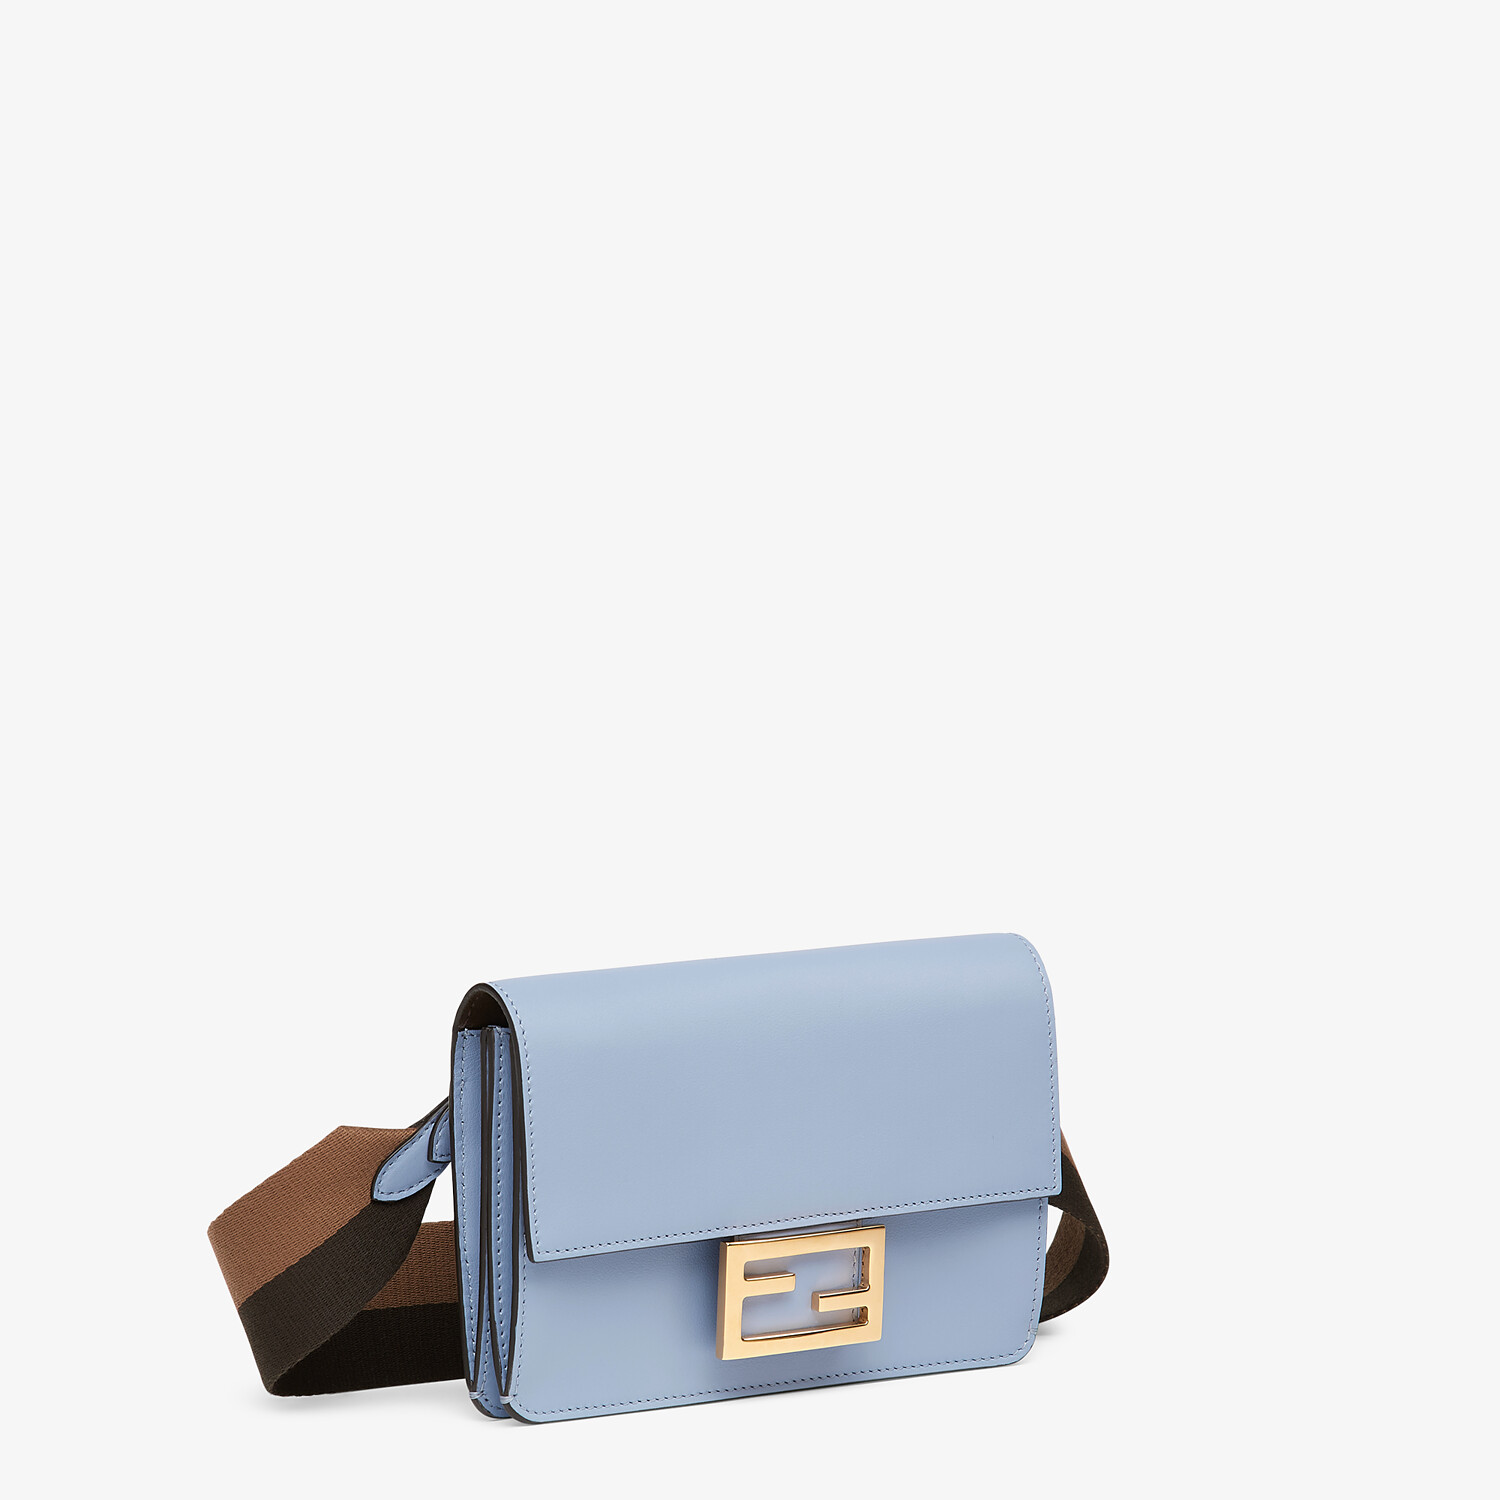 FENDI FLAT BAGUETTE - Light blue leather mini-bag - view 3 detail